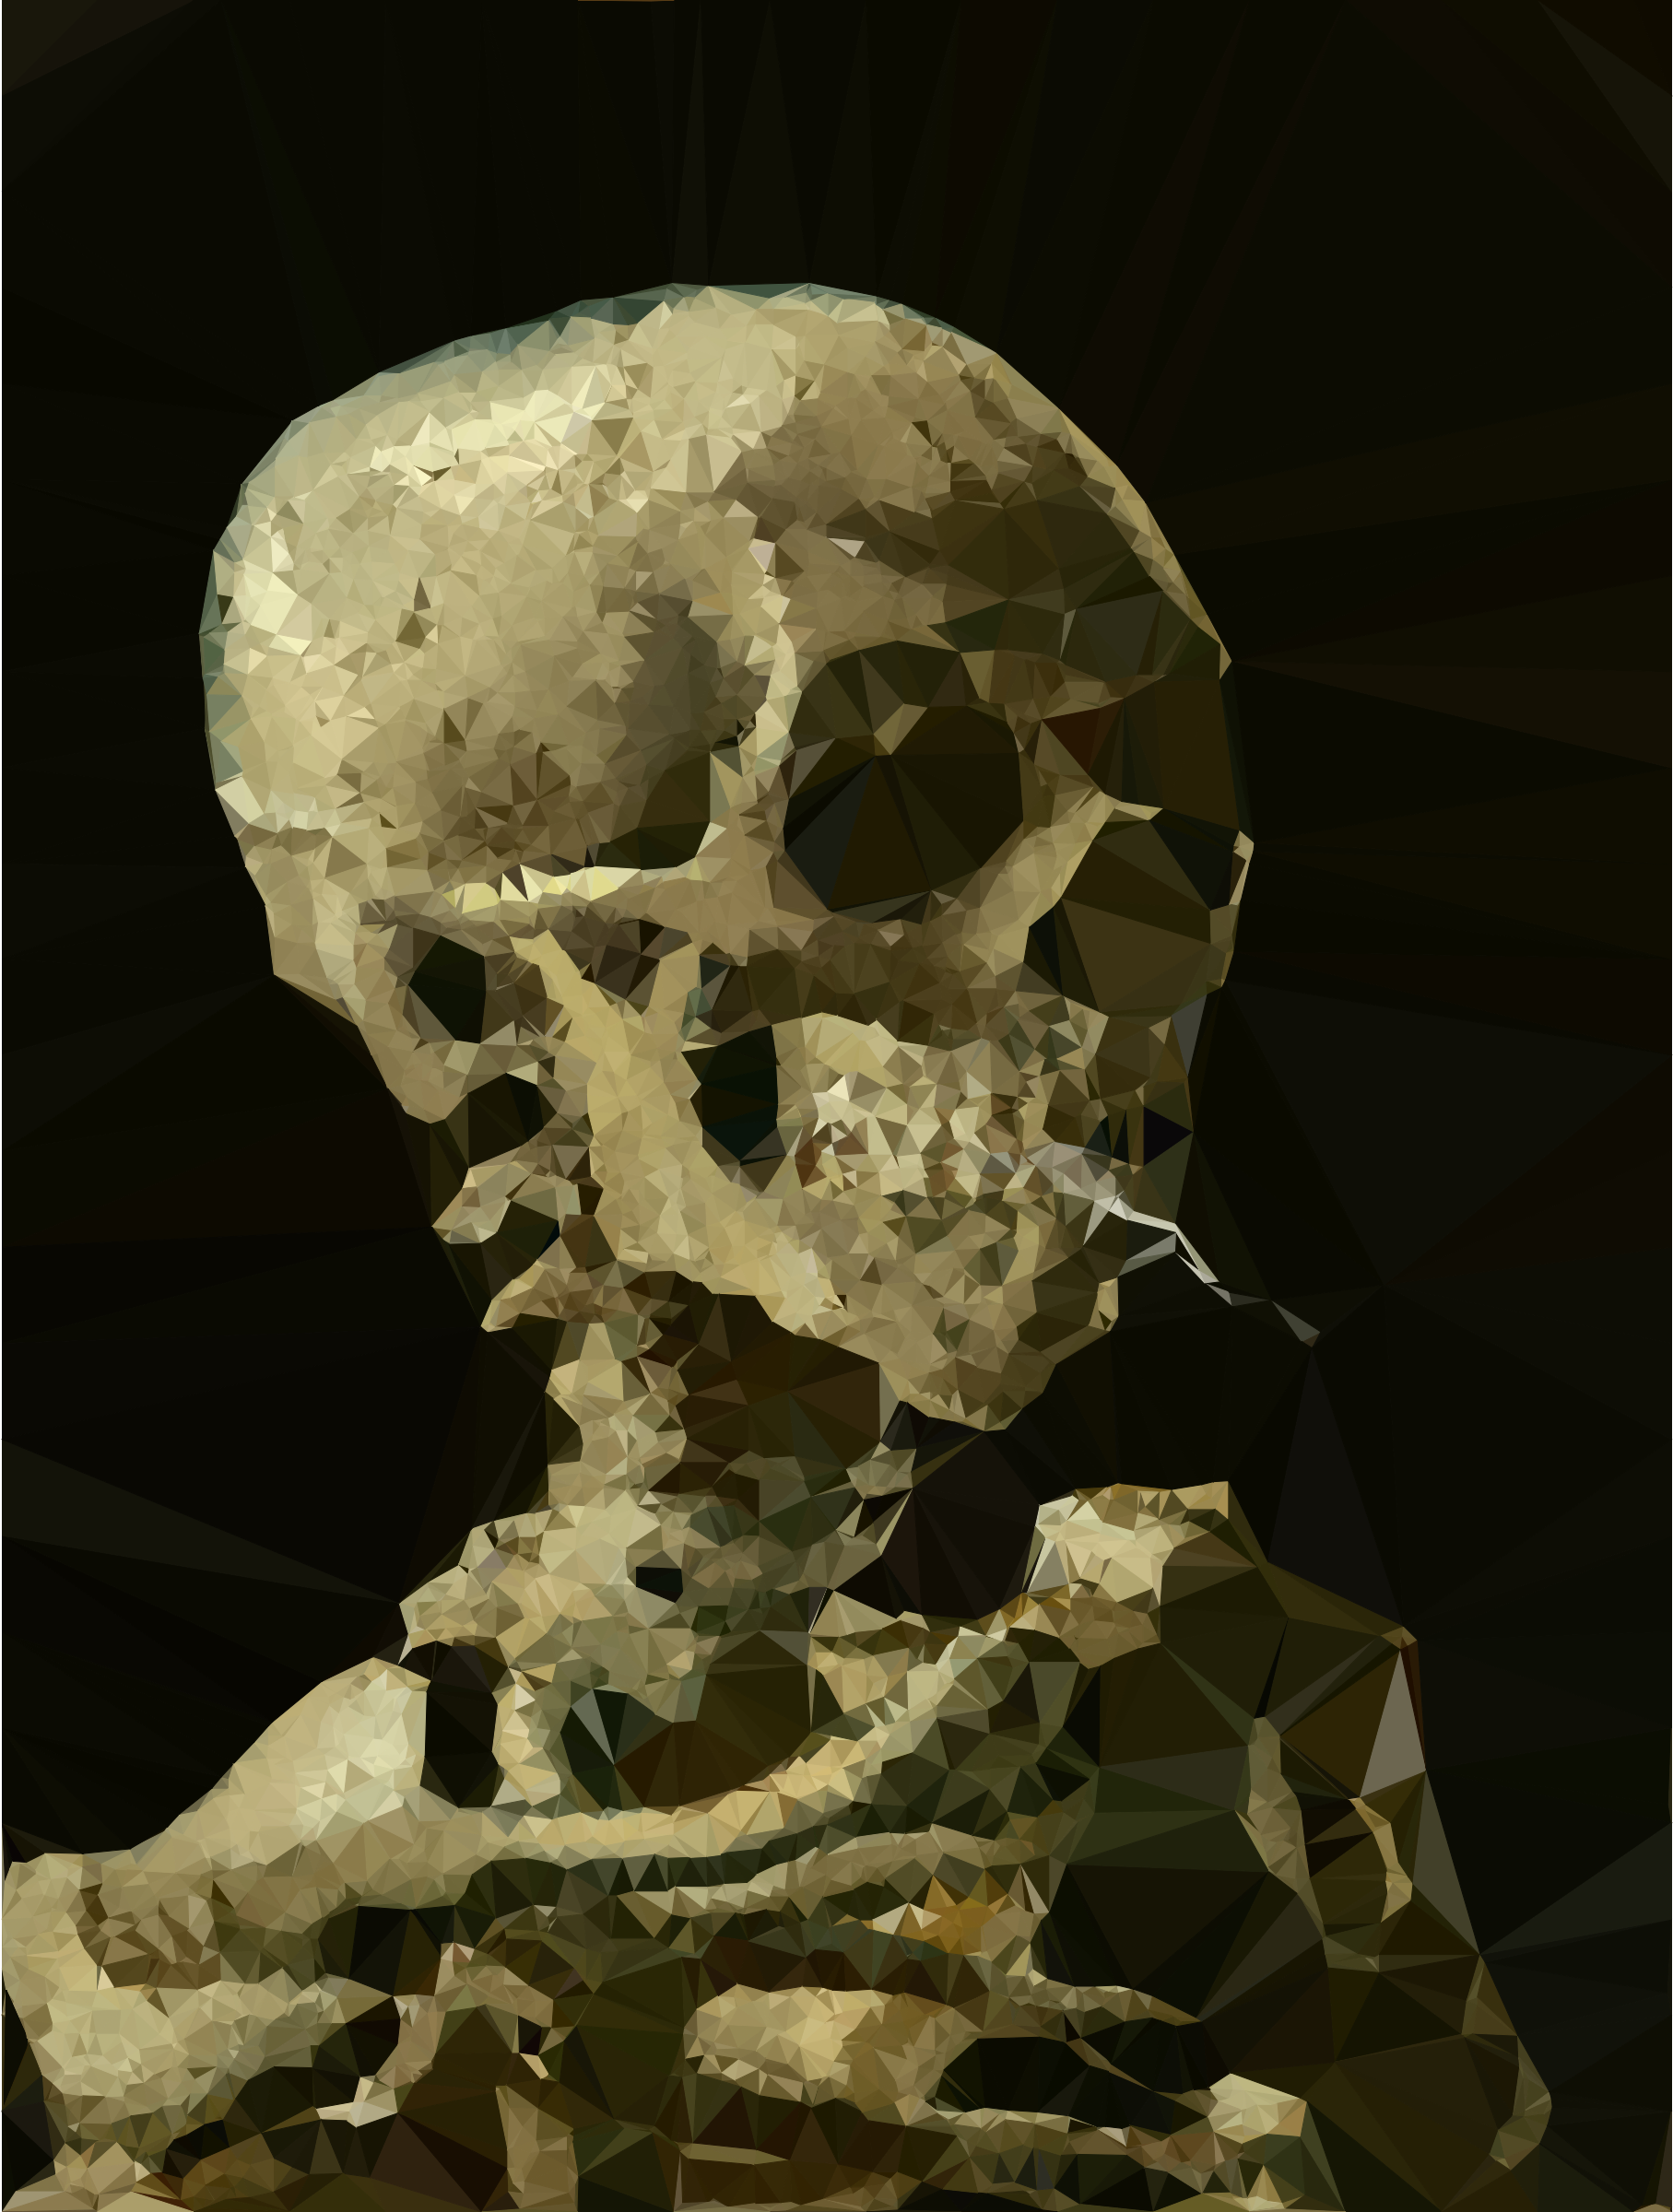 Low Poly Skeleton With Burning Cigarette Vincent Van Gogh by GDJ